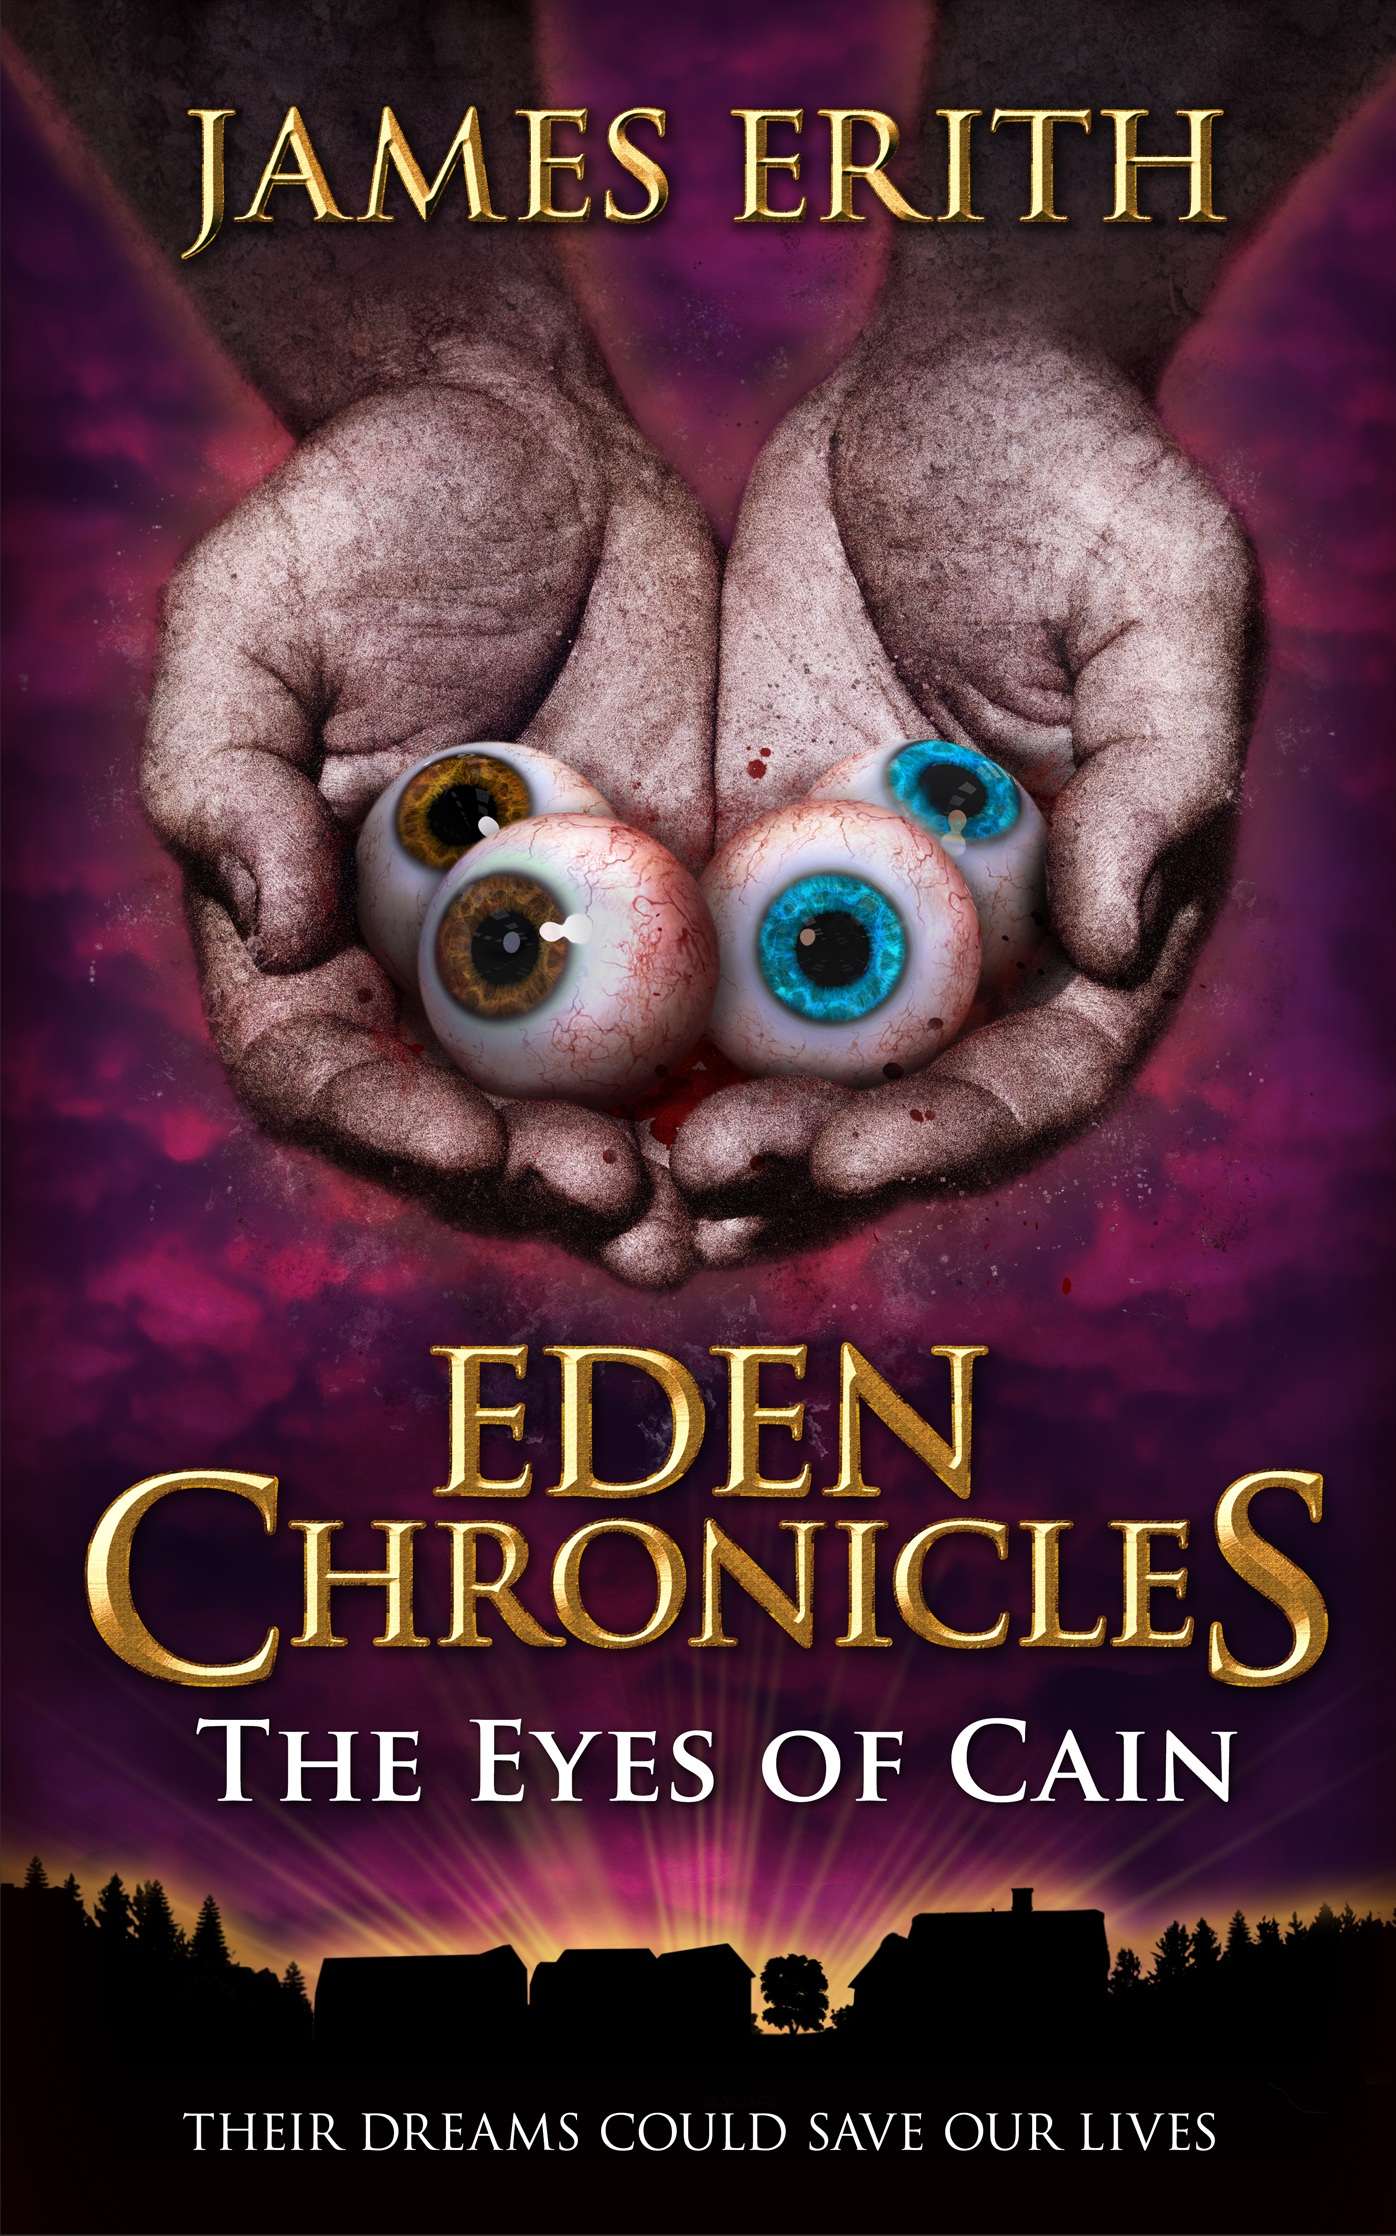 THE EYES OF CAIN - Book 5